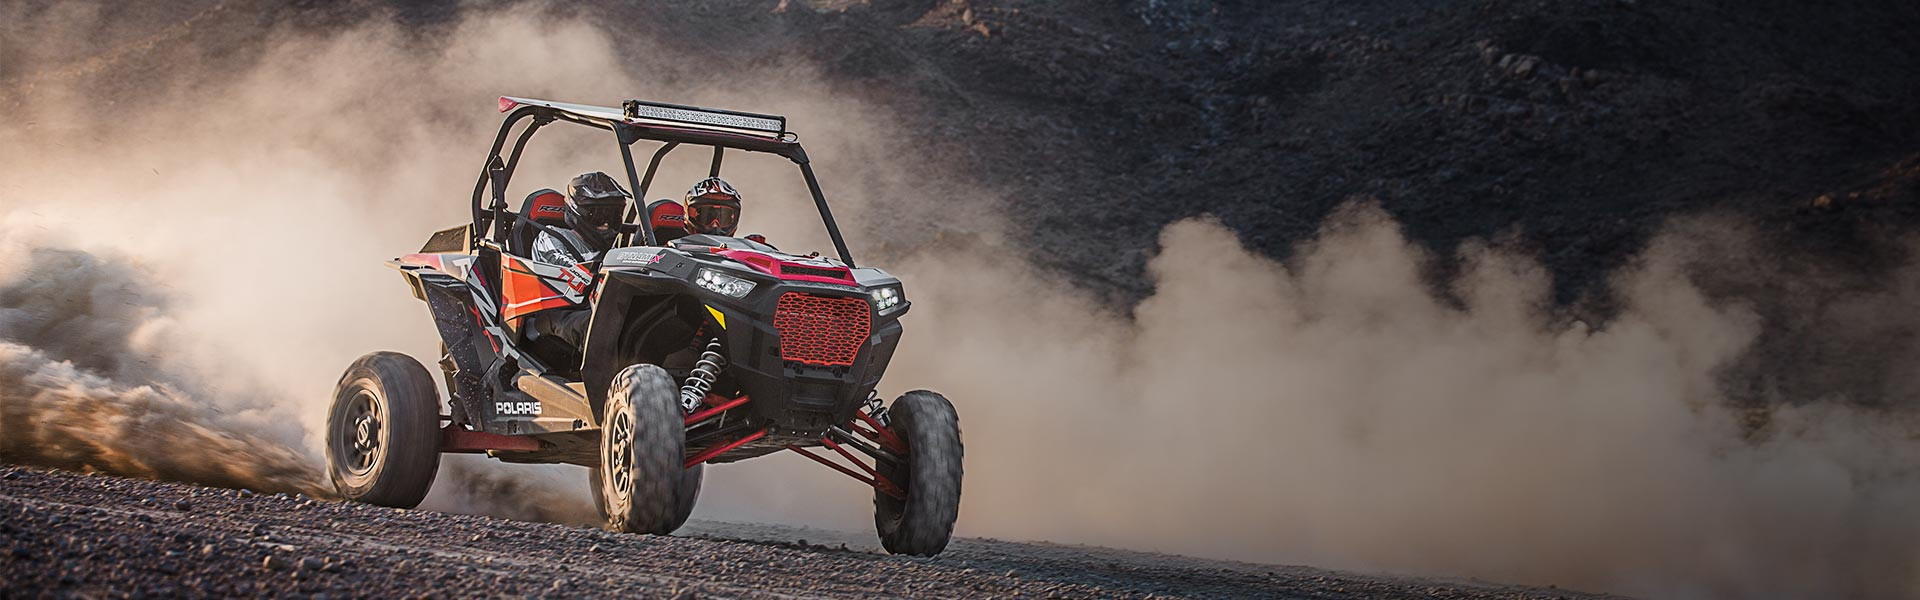 2018 Polaris RZR XP TURBO DYNAMIX EDITION